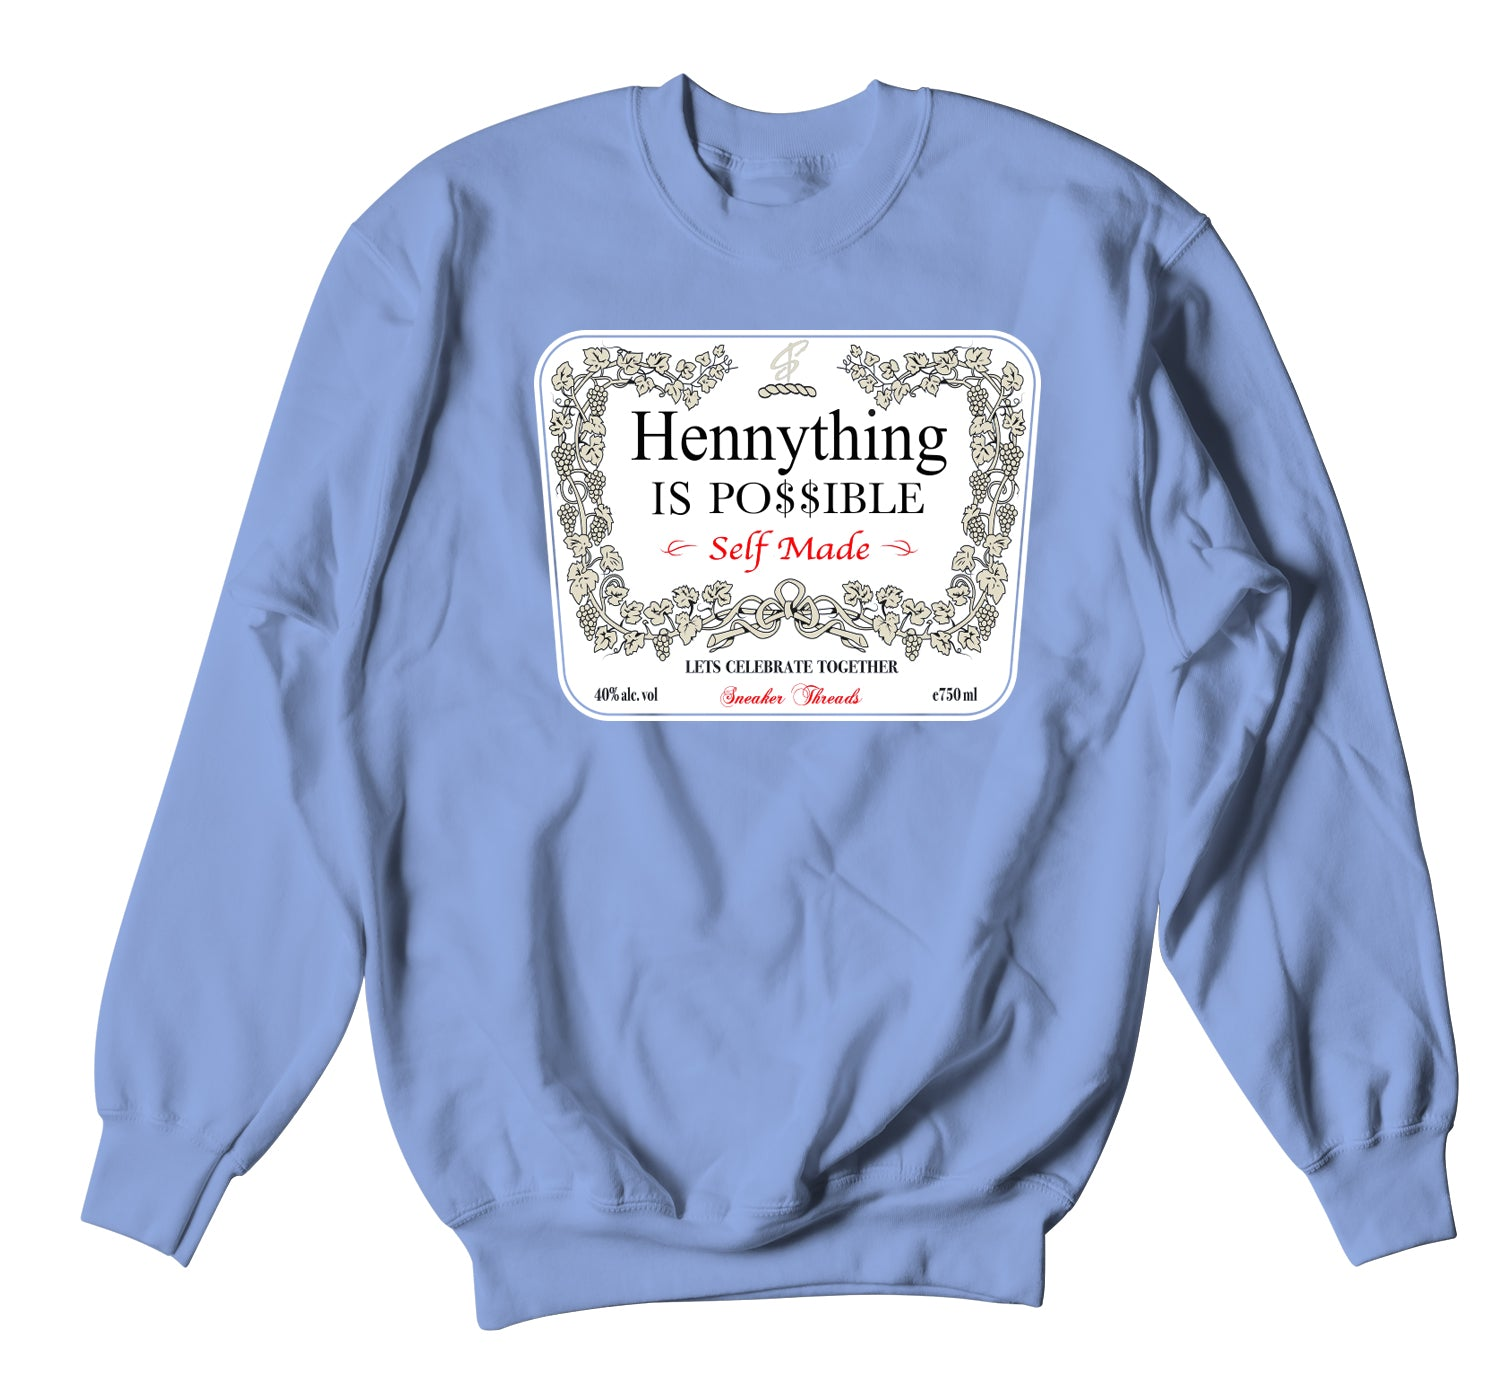 Jordan 3 UNC Sweater - Hennything - Light Blue